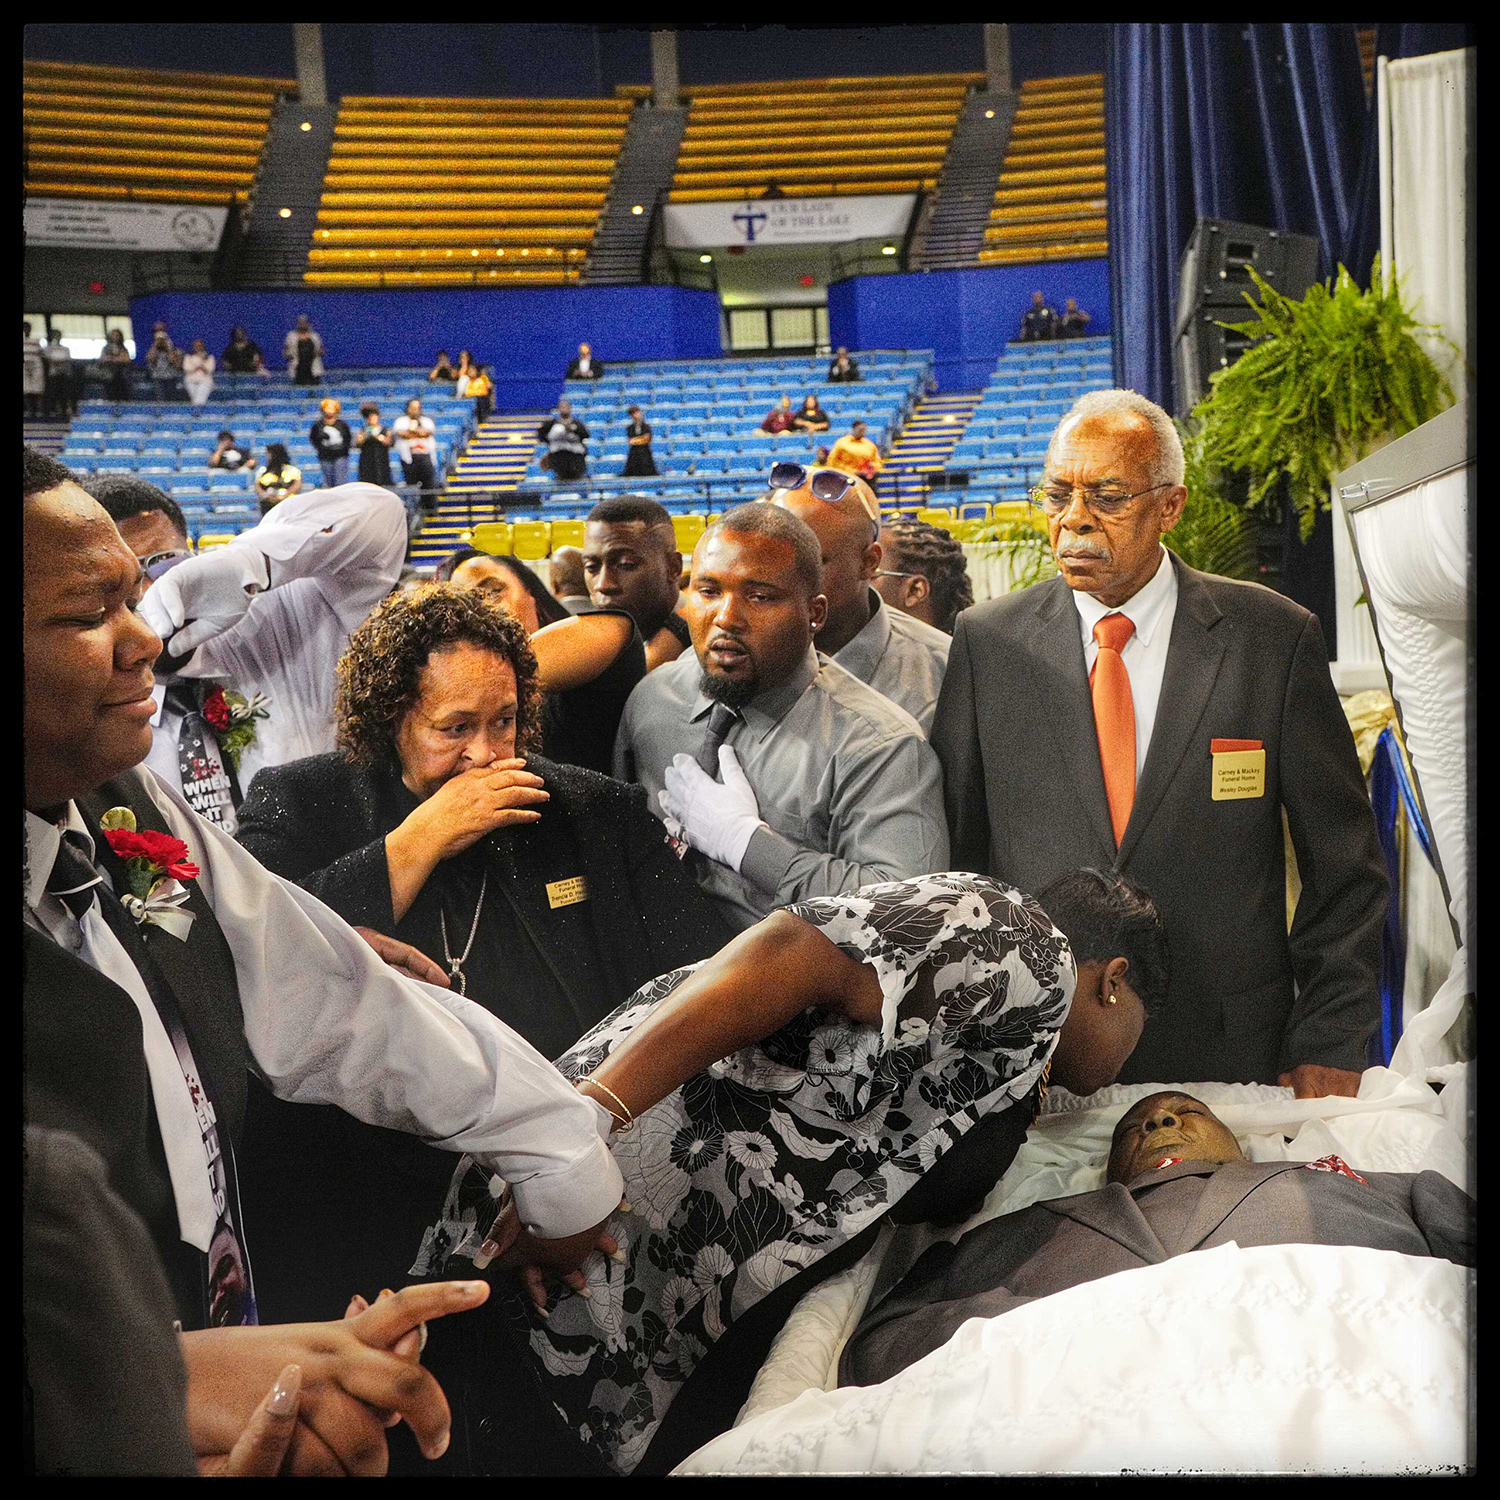 Baton Rouge, La.: Quinyetta McMillon says her final goodbye to Alton Sterling with a kiss as their 15-year-old son Cameron looks on with tears. They are flanked by relatives who rushed to the front to say goodbye for the final time. July 15, 2016.From  Lessons From a Tragic Month in America